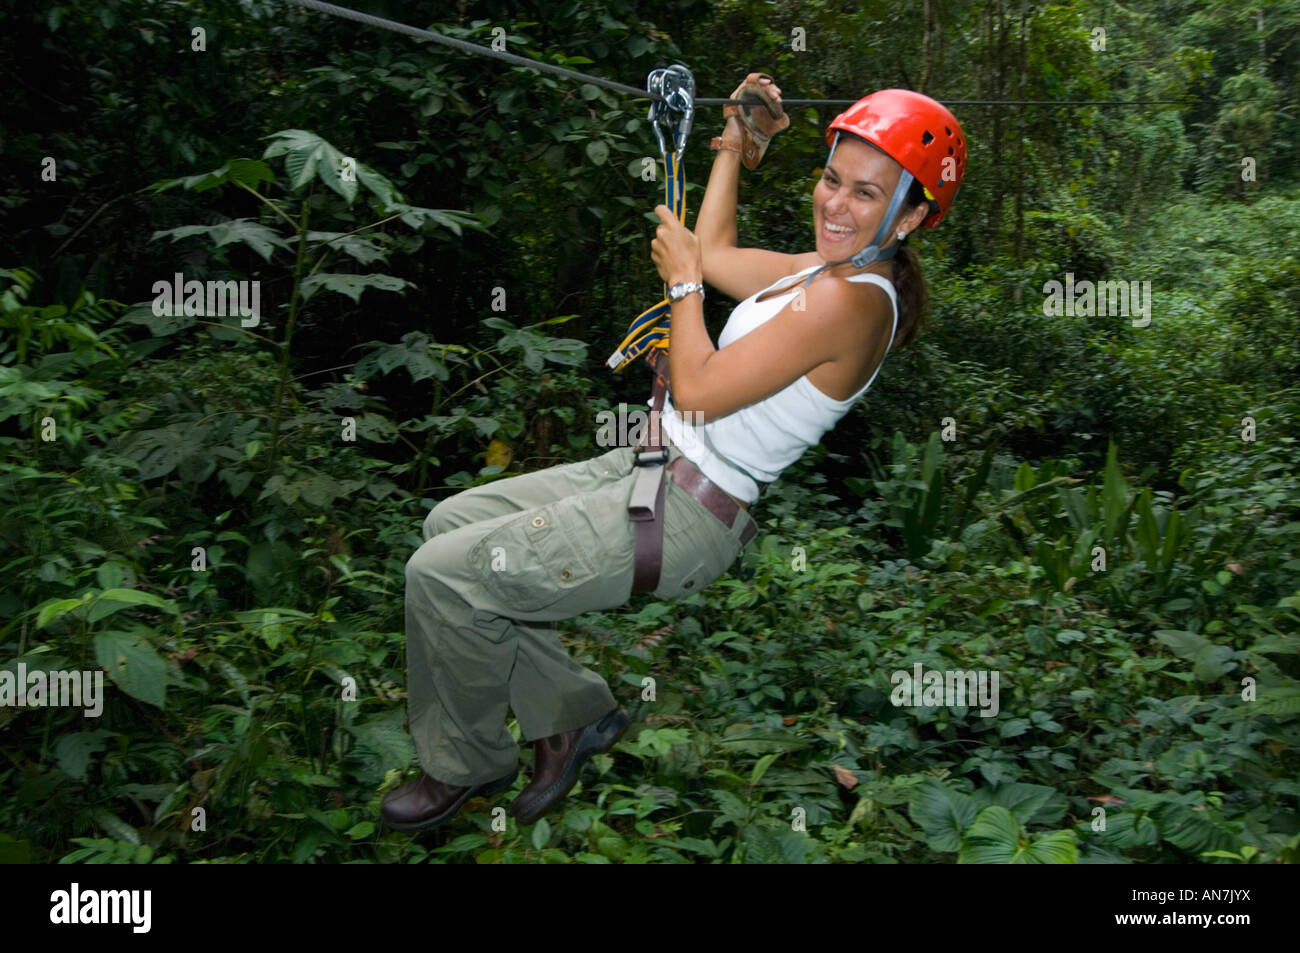 Woman on canopy zipline, Aventuras del Sarapiqui, Costa Rica - Stock Image